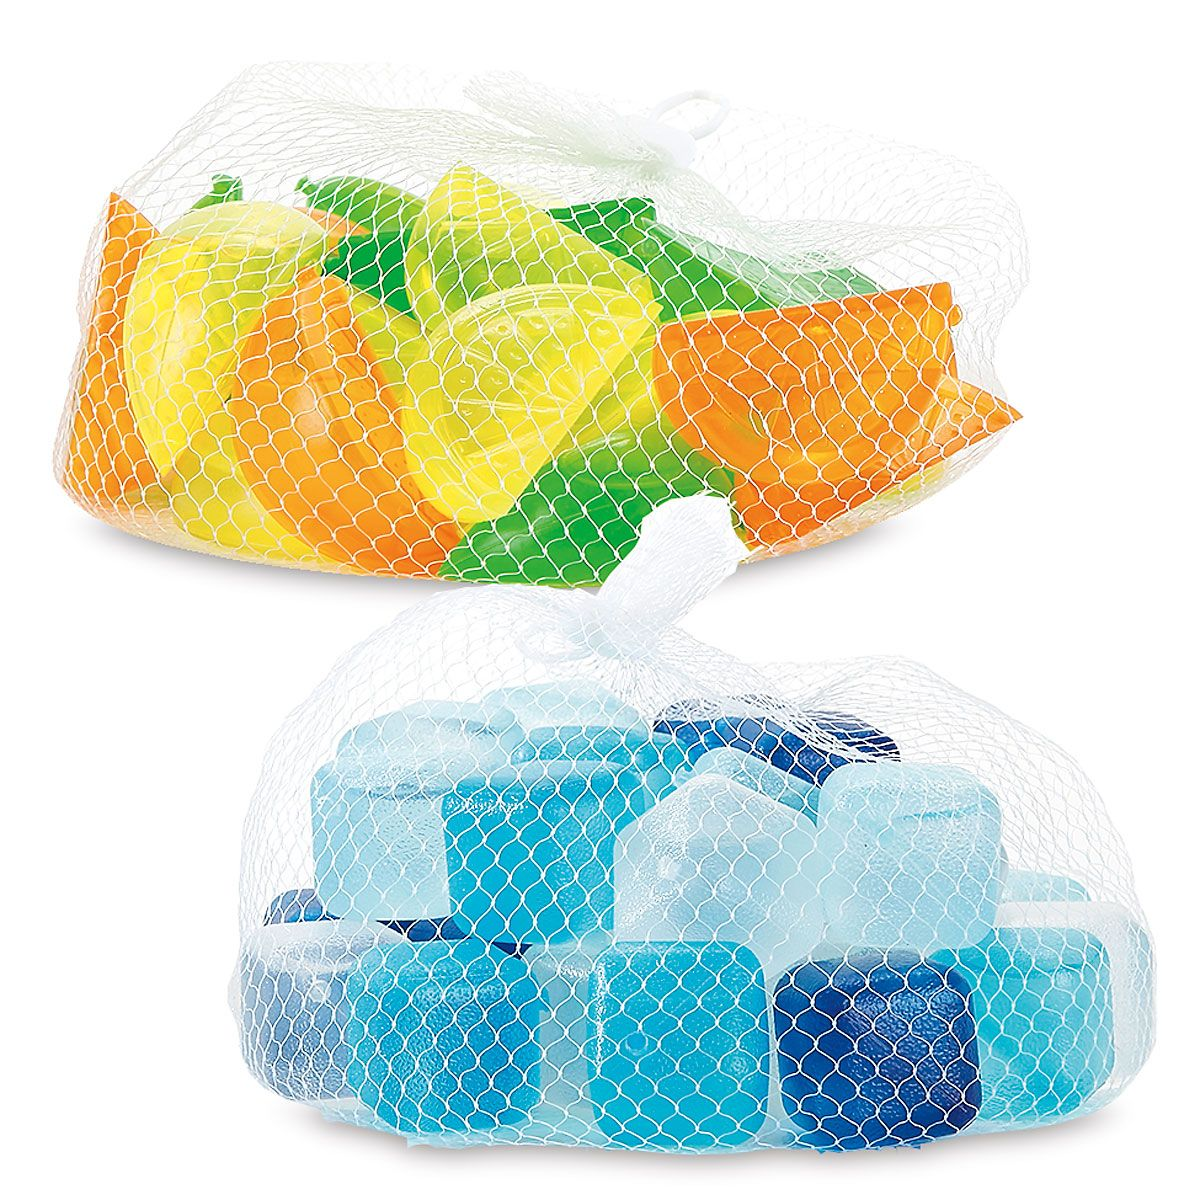 Reusable Ice Cubes or Slices